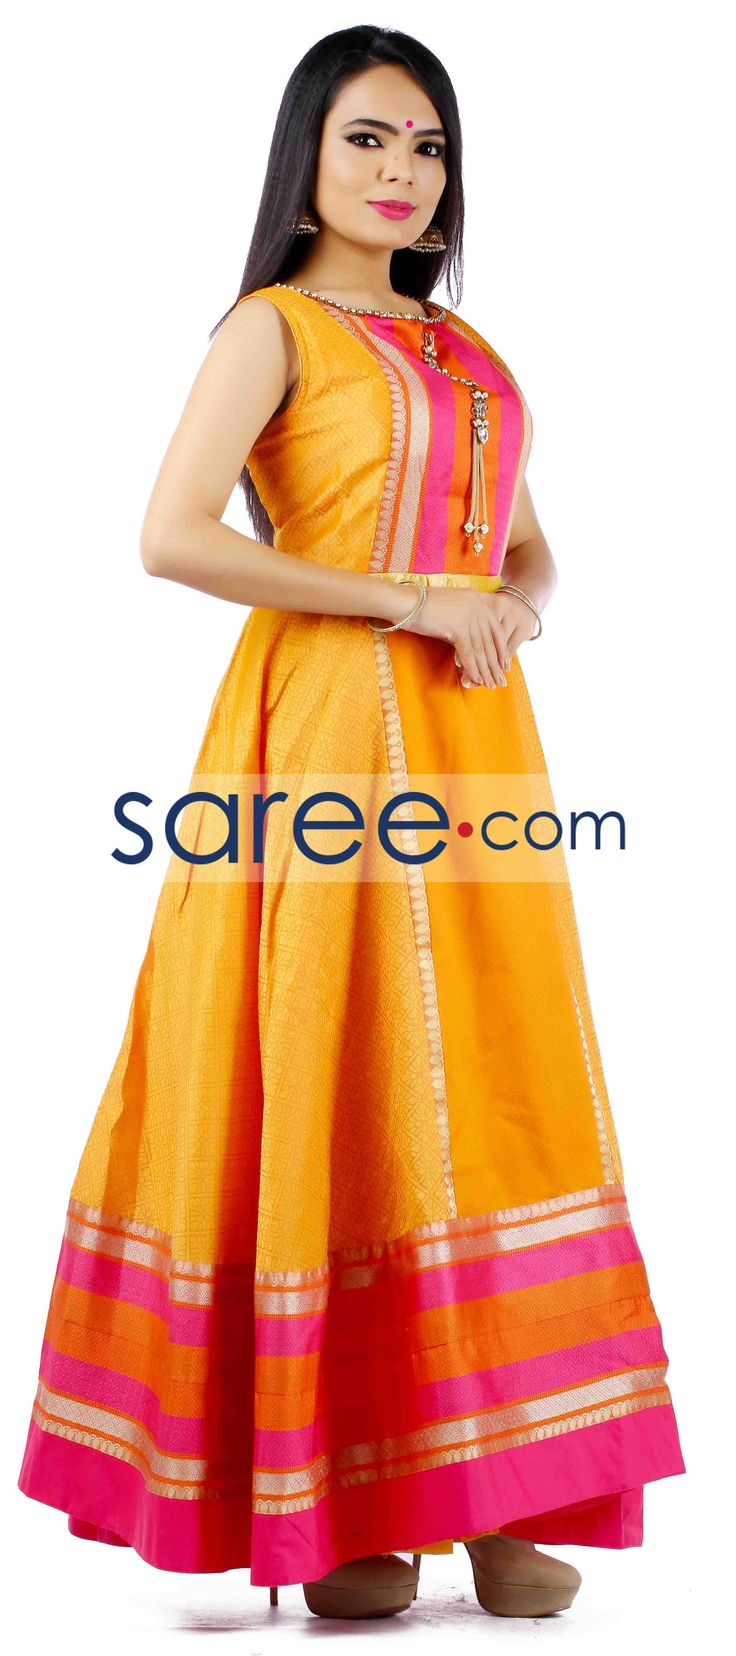 YELLOW SILK ANARKALI SUIT  #SalwarSuit #SalwarKameez #AnarkaliSuits #PartywearSalwarSuits #SalwarSuits #Indowestern